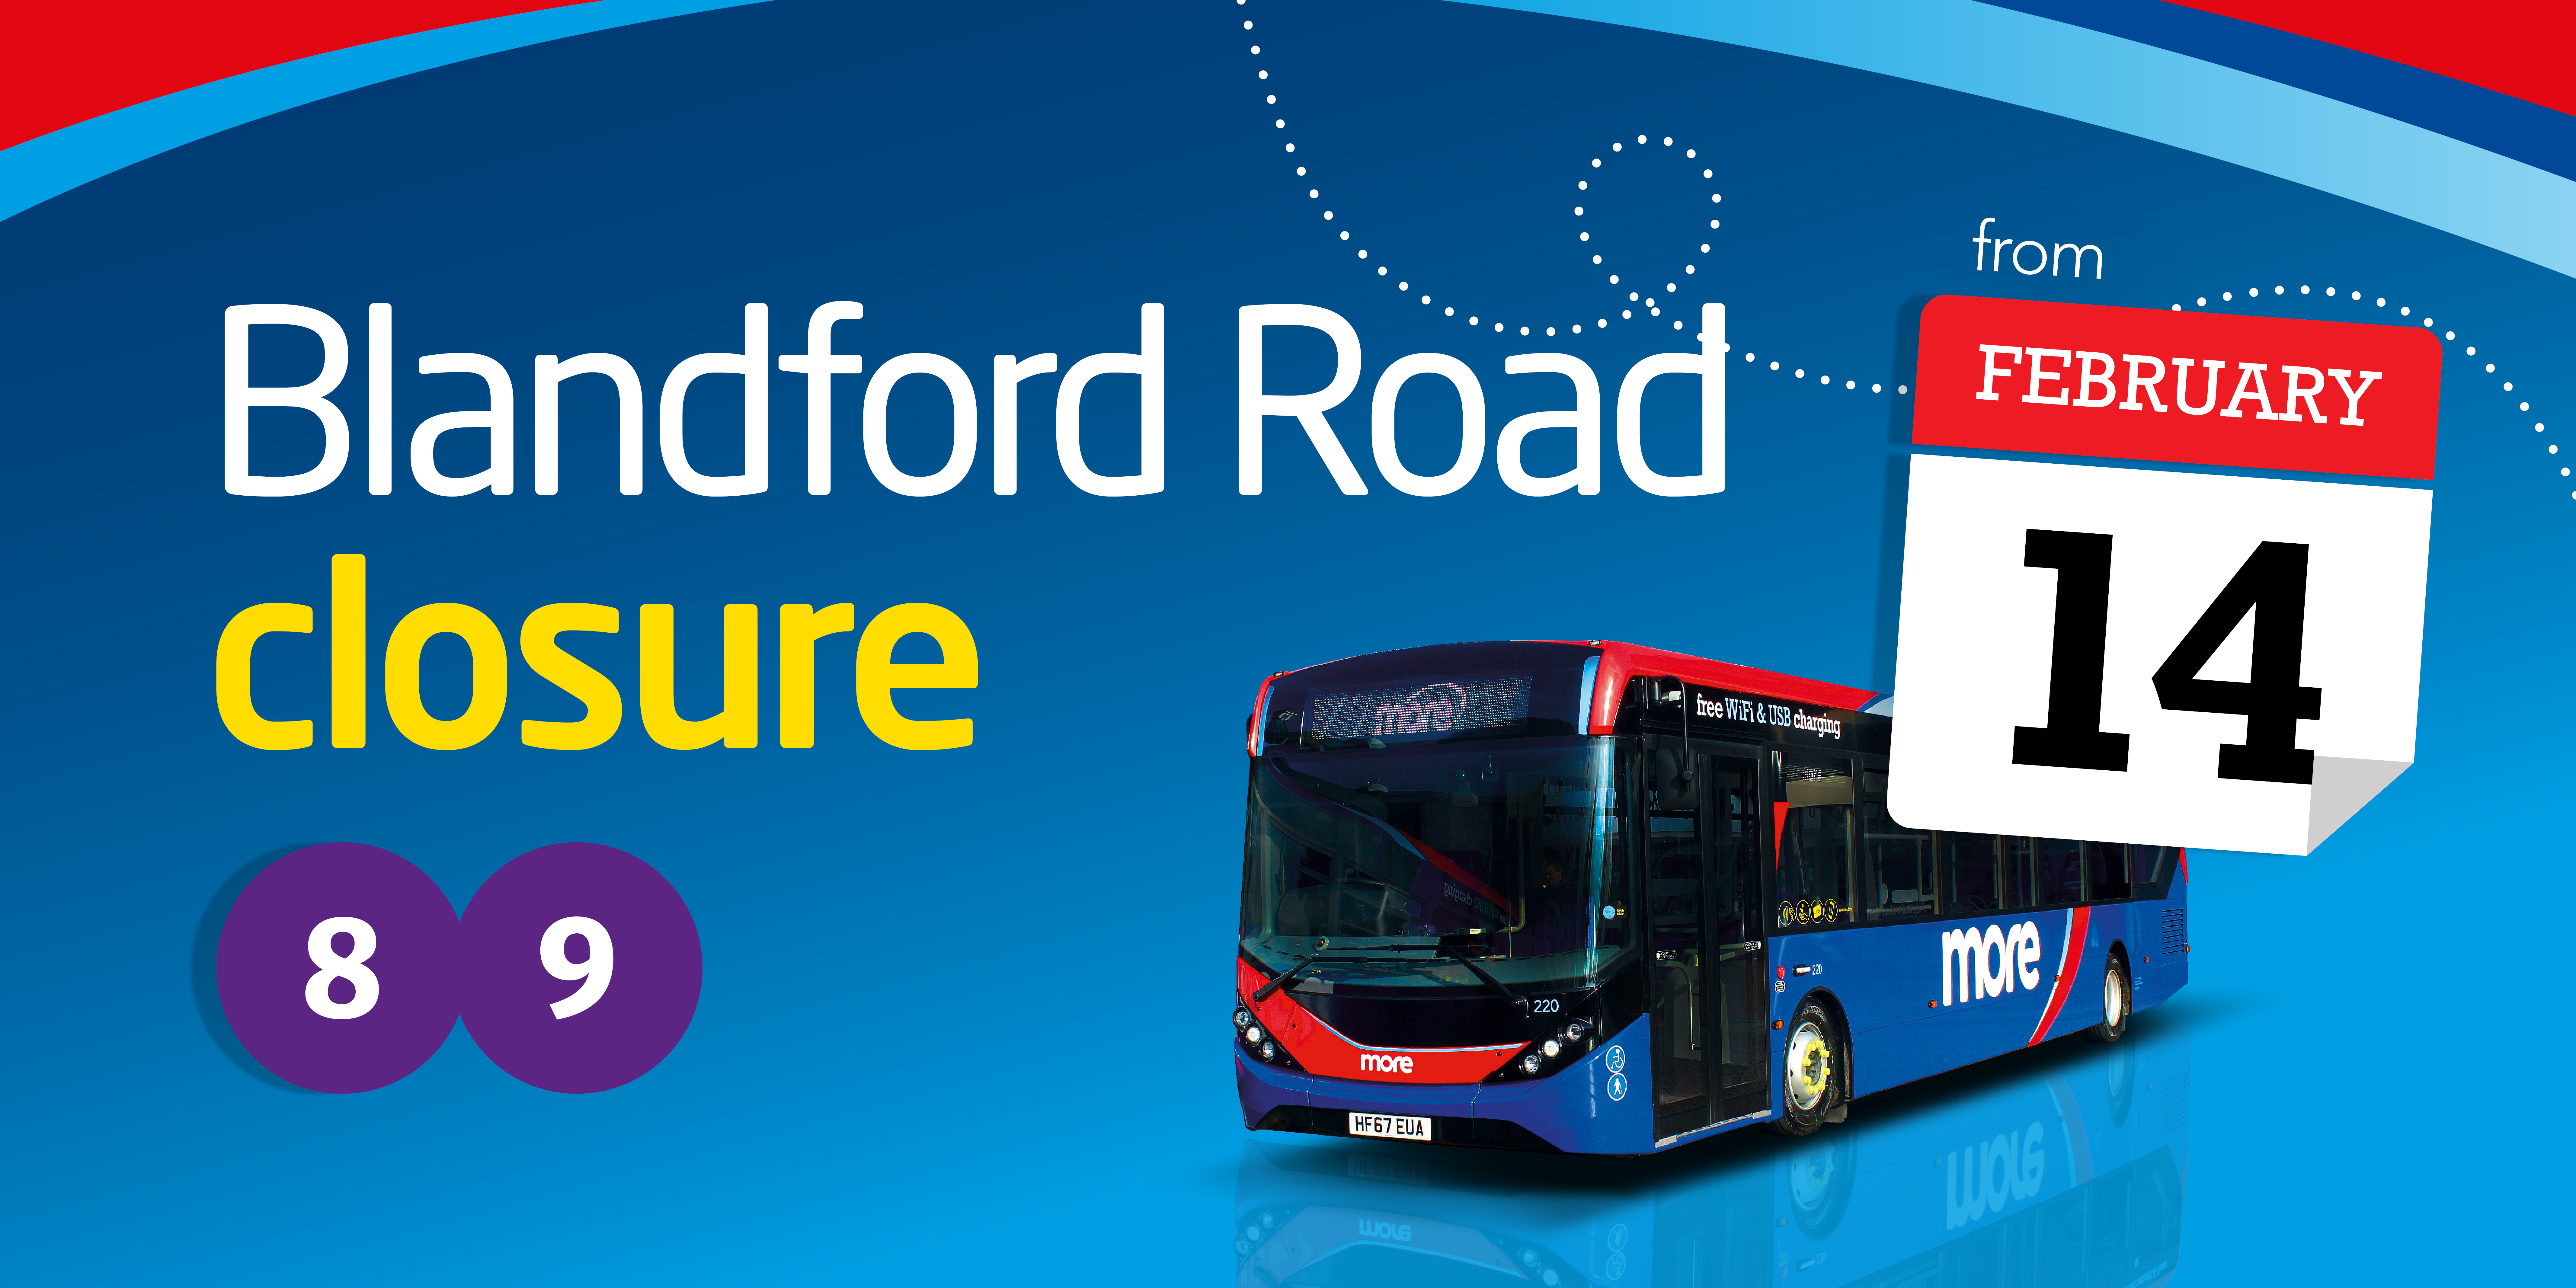 Image of a morebus with text reading 'Blandford Road closure from 14th February' affecting route 8 and 9